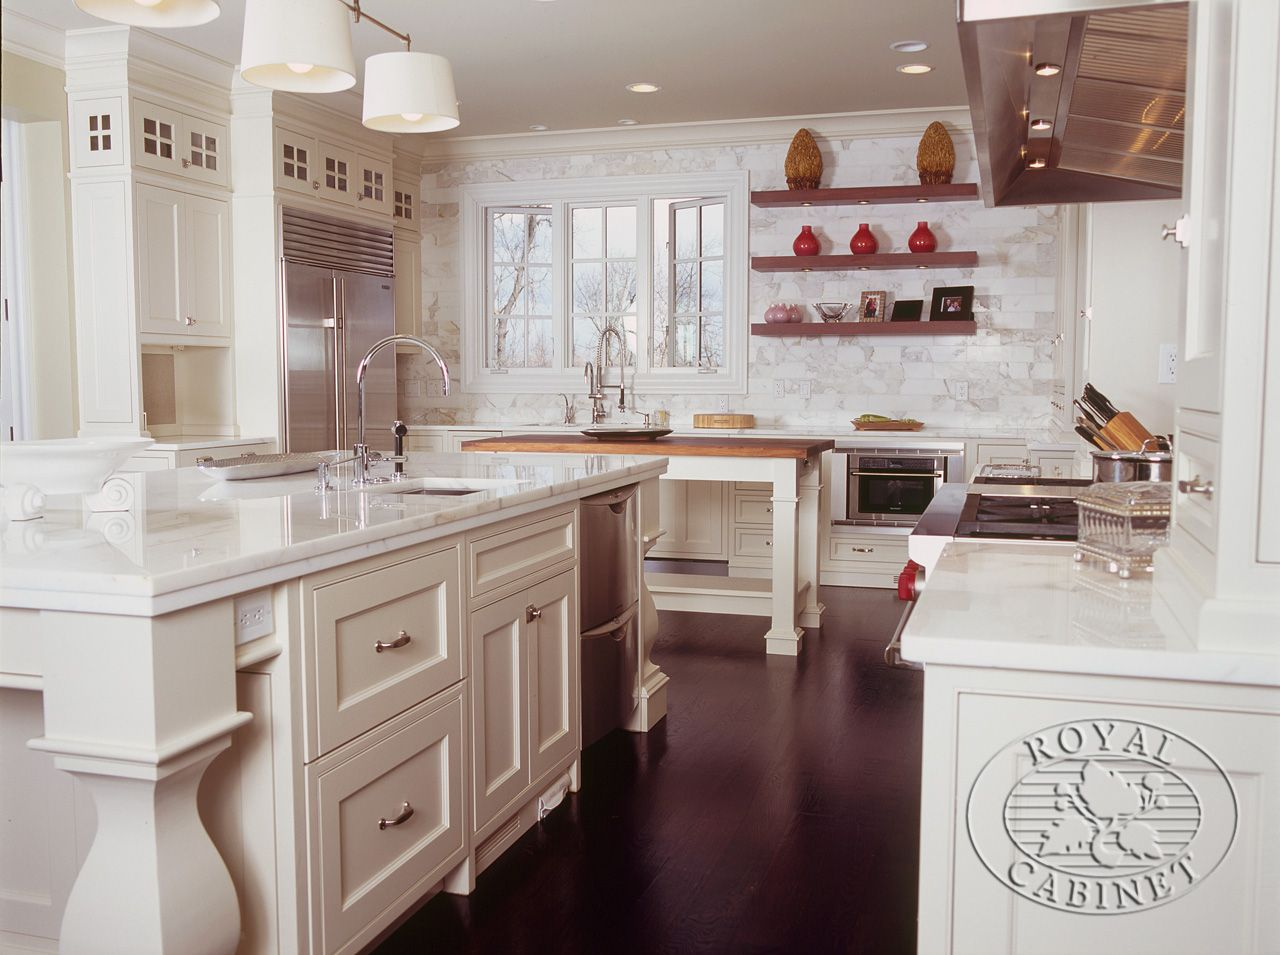 A Beautiful Kitchen Featuring Cabinetry From Royal Cabinet Company In Hillsborough Nj For More Visit Transitional Kitchen Design Kitchen Design Kitchen Redo